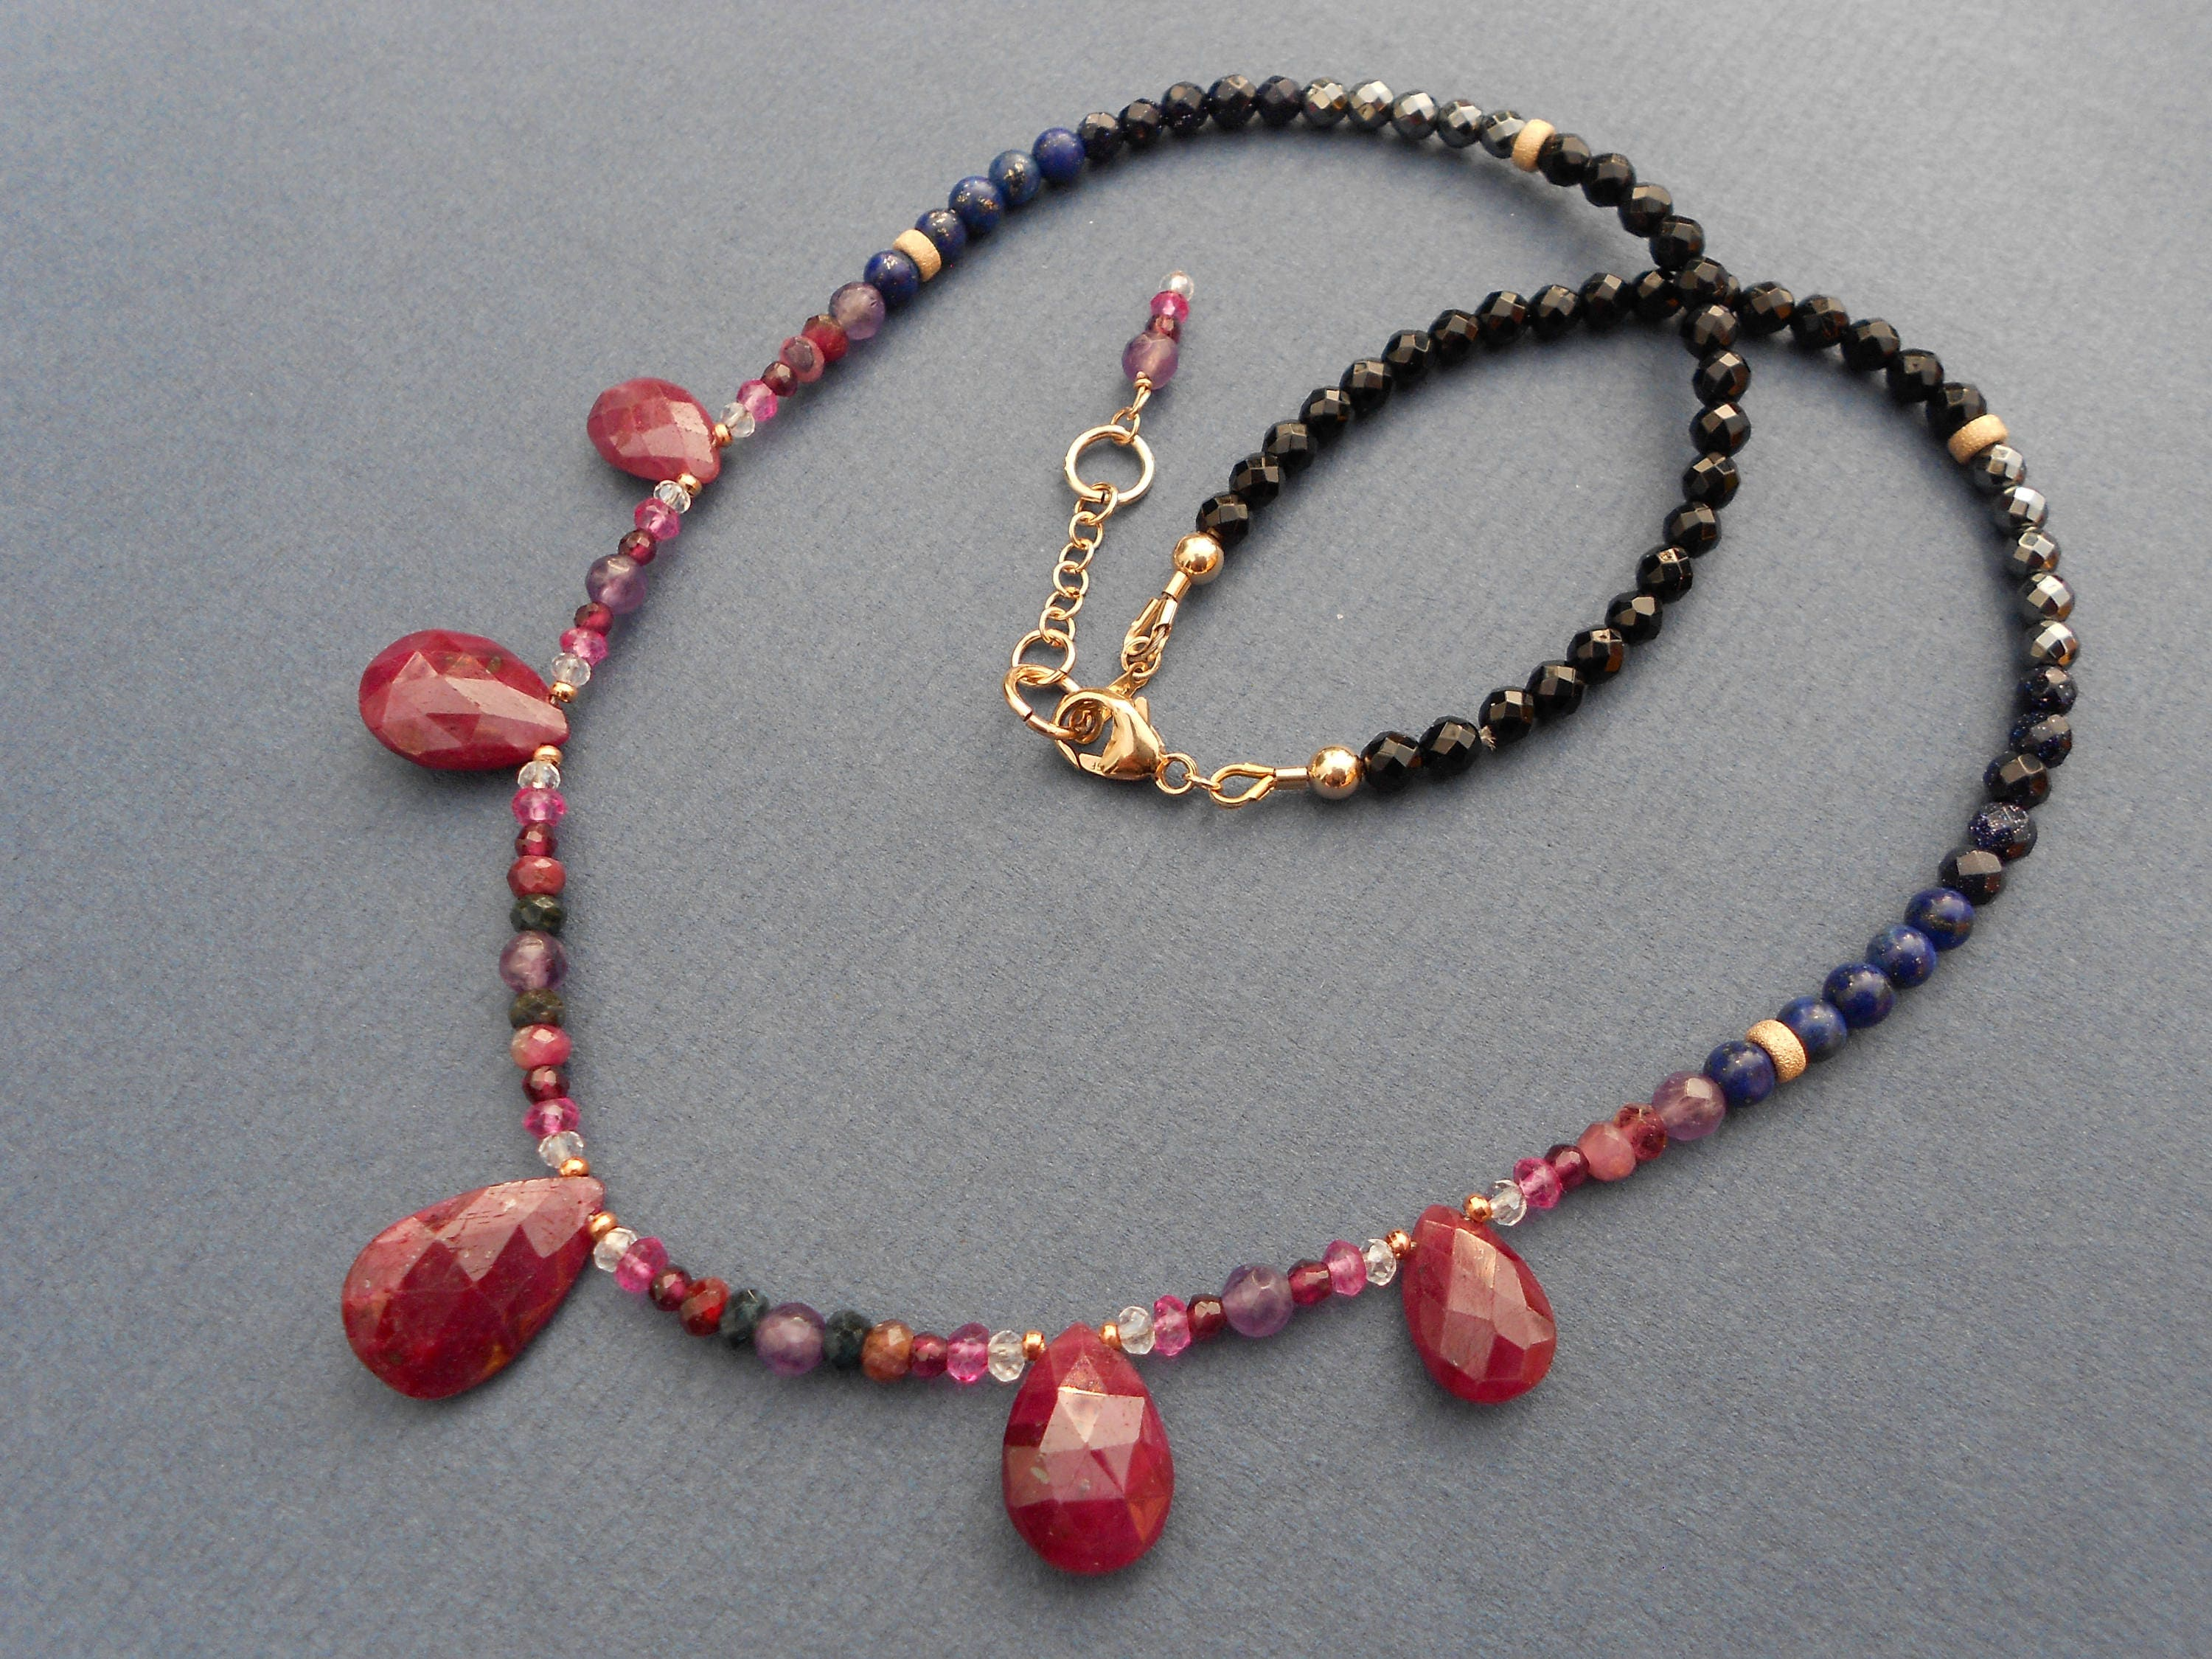 gem multi gold gemstone necklaces link for sale at id jewelry vintage j org necklace